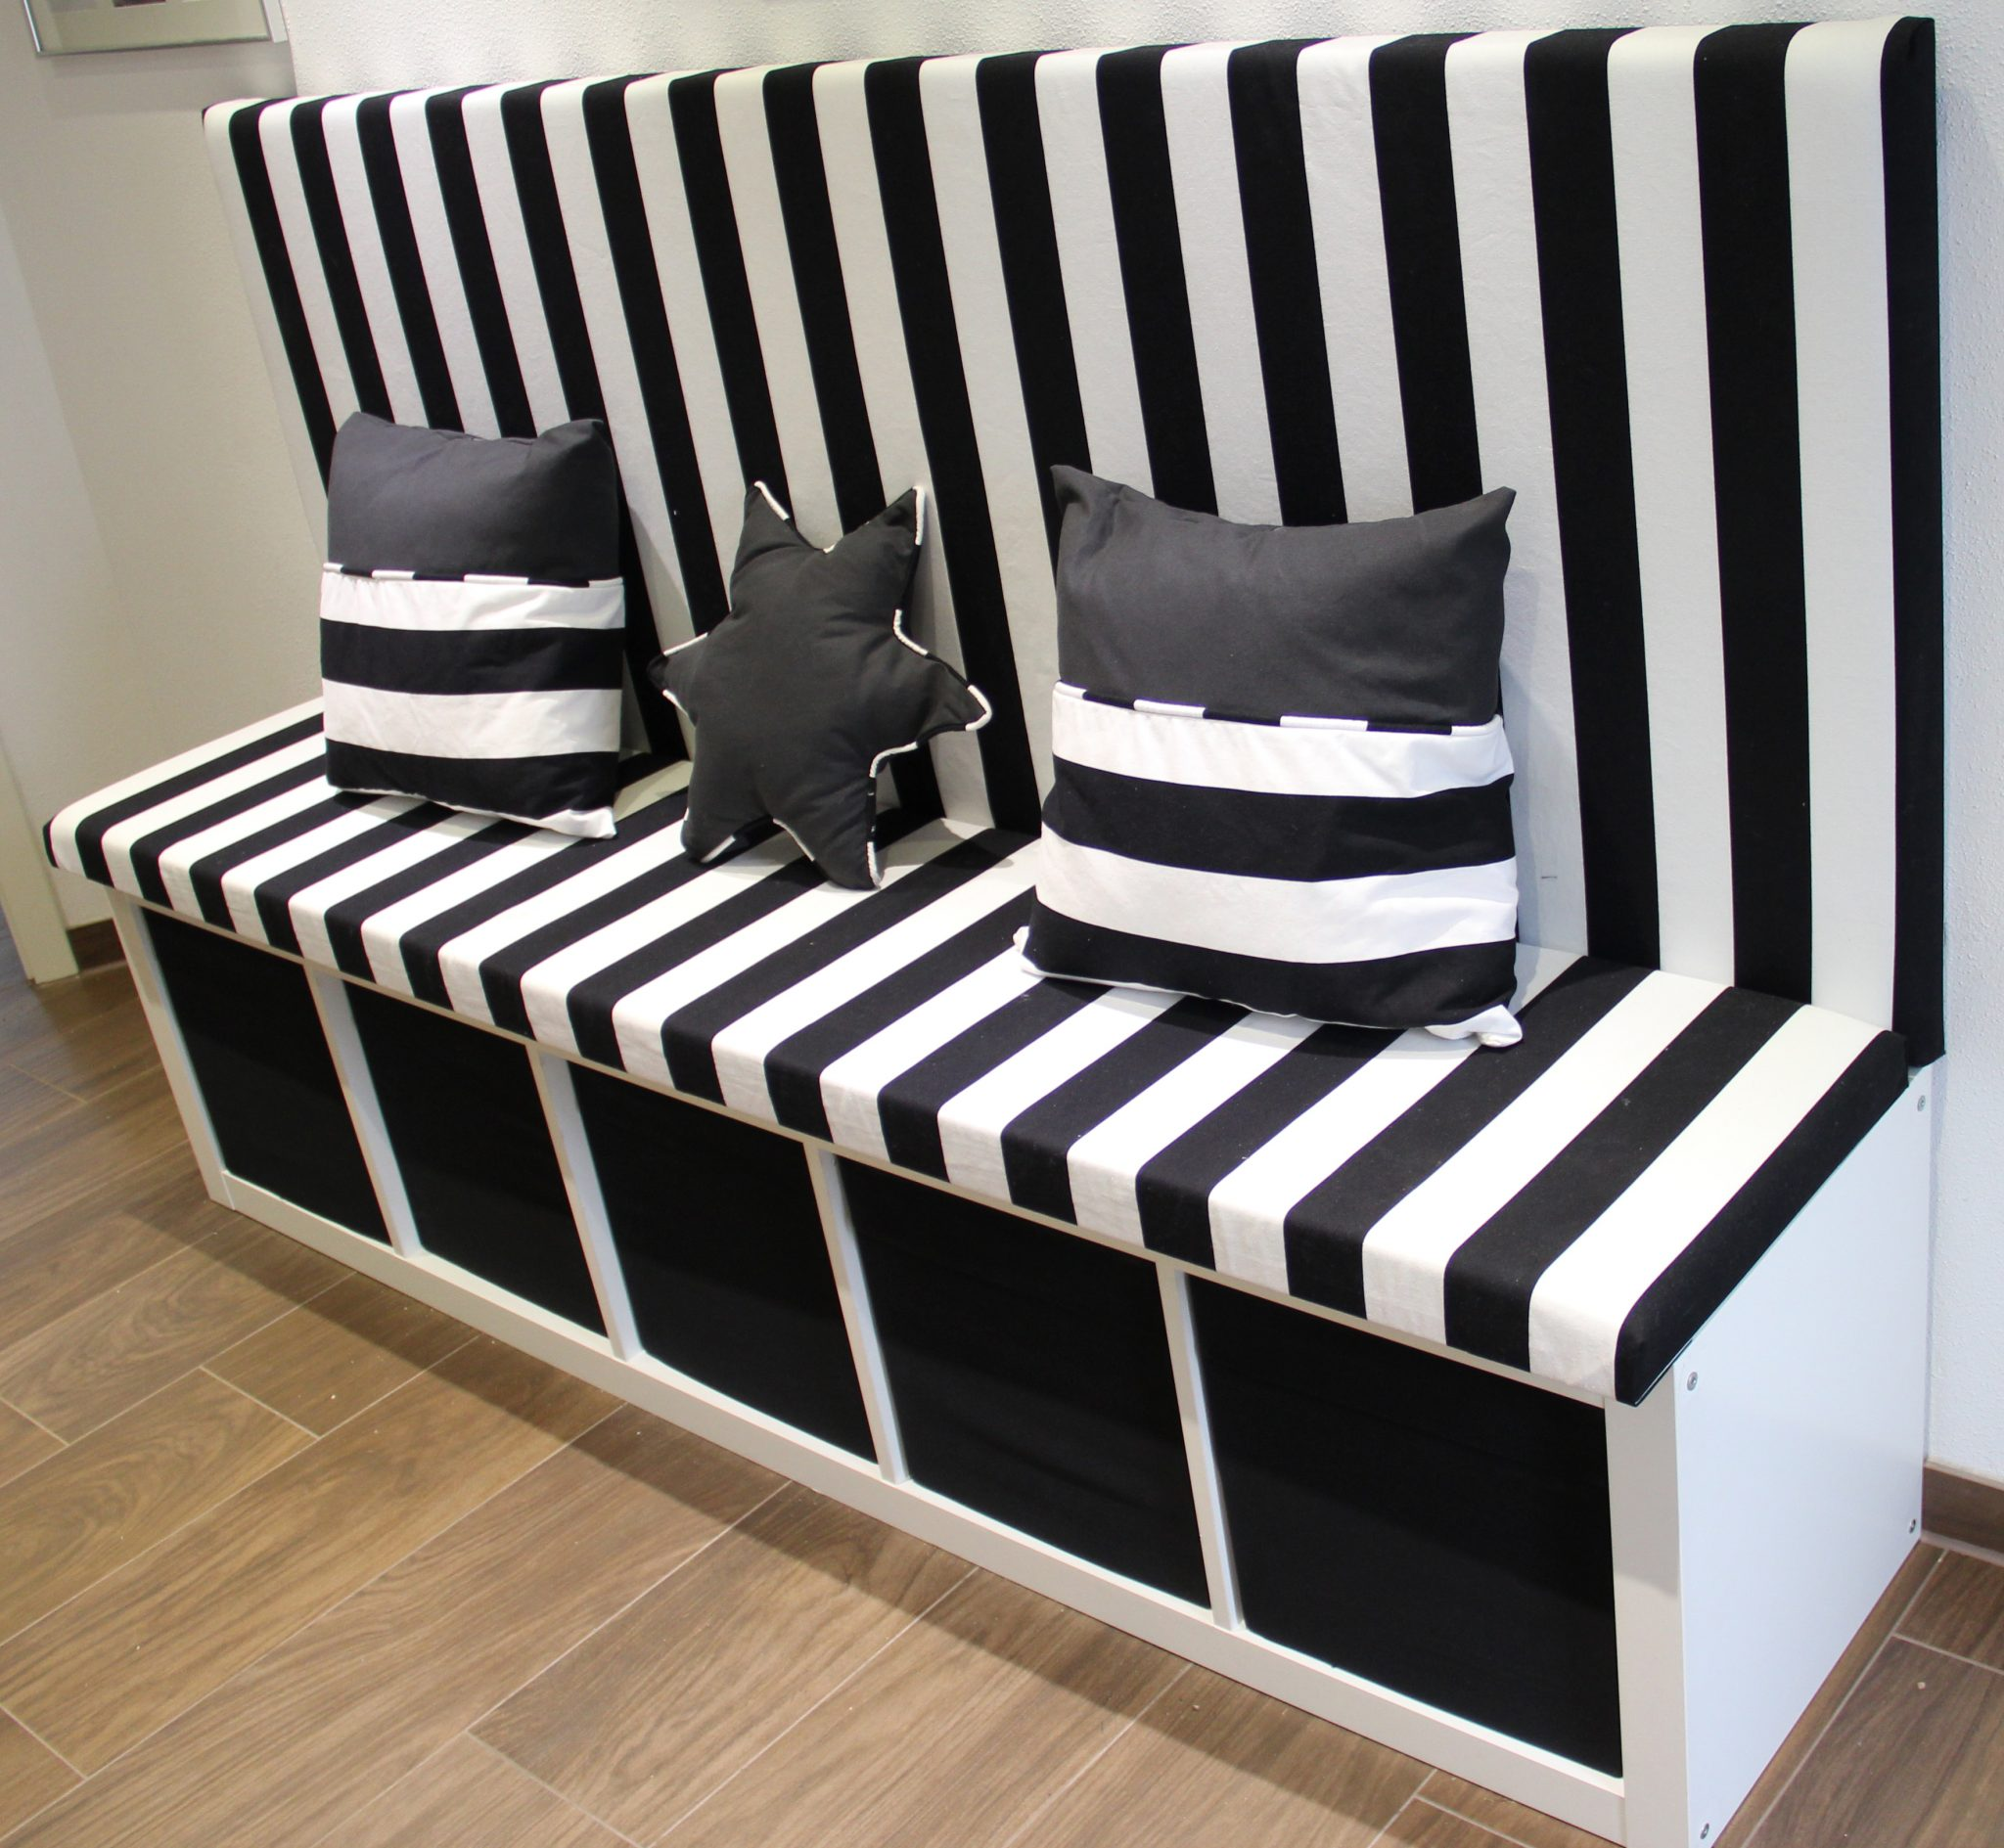 kallax ikea hack als bank rosadiy sch ne dinge machen das leben sch ner. Black Bedroom Furniture Sets. Home Design Ideas